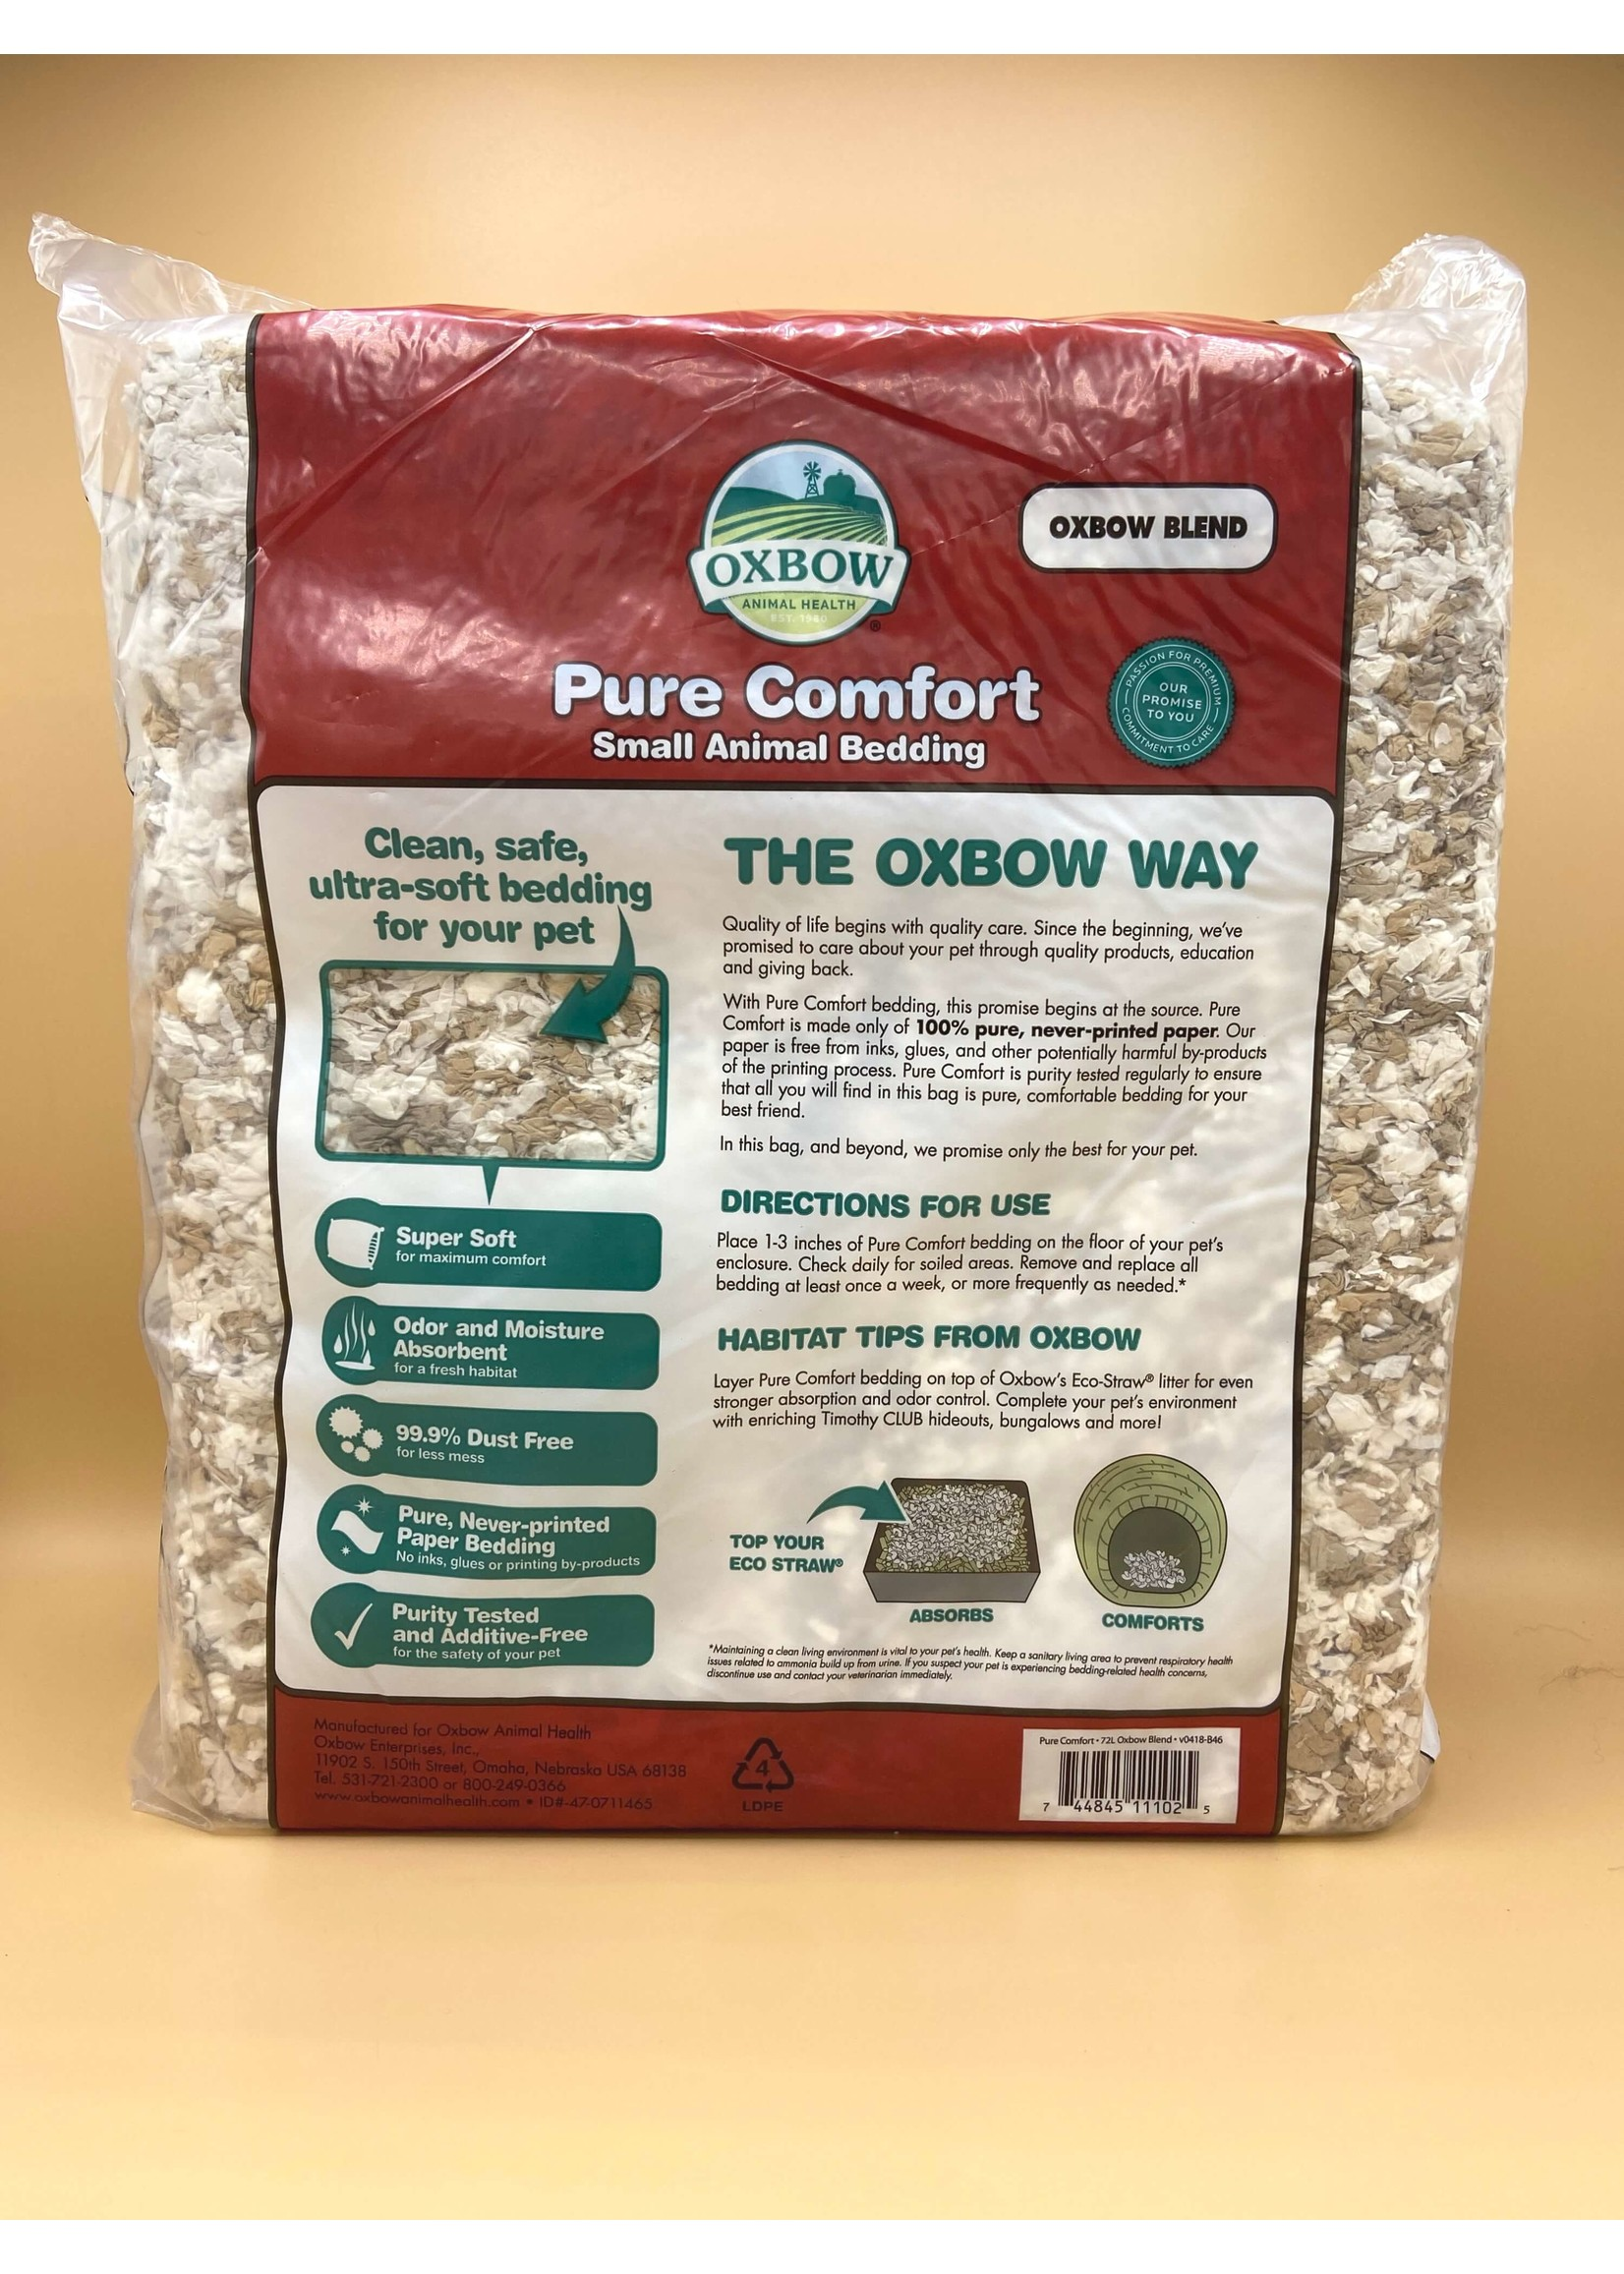 Oxbow Oxbow Pure Comfort Small Animal Bedding, 72L Oxbow Blend